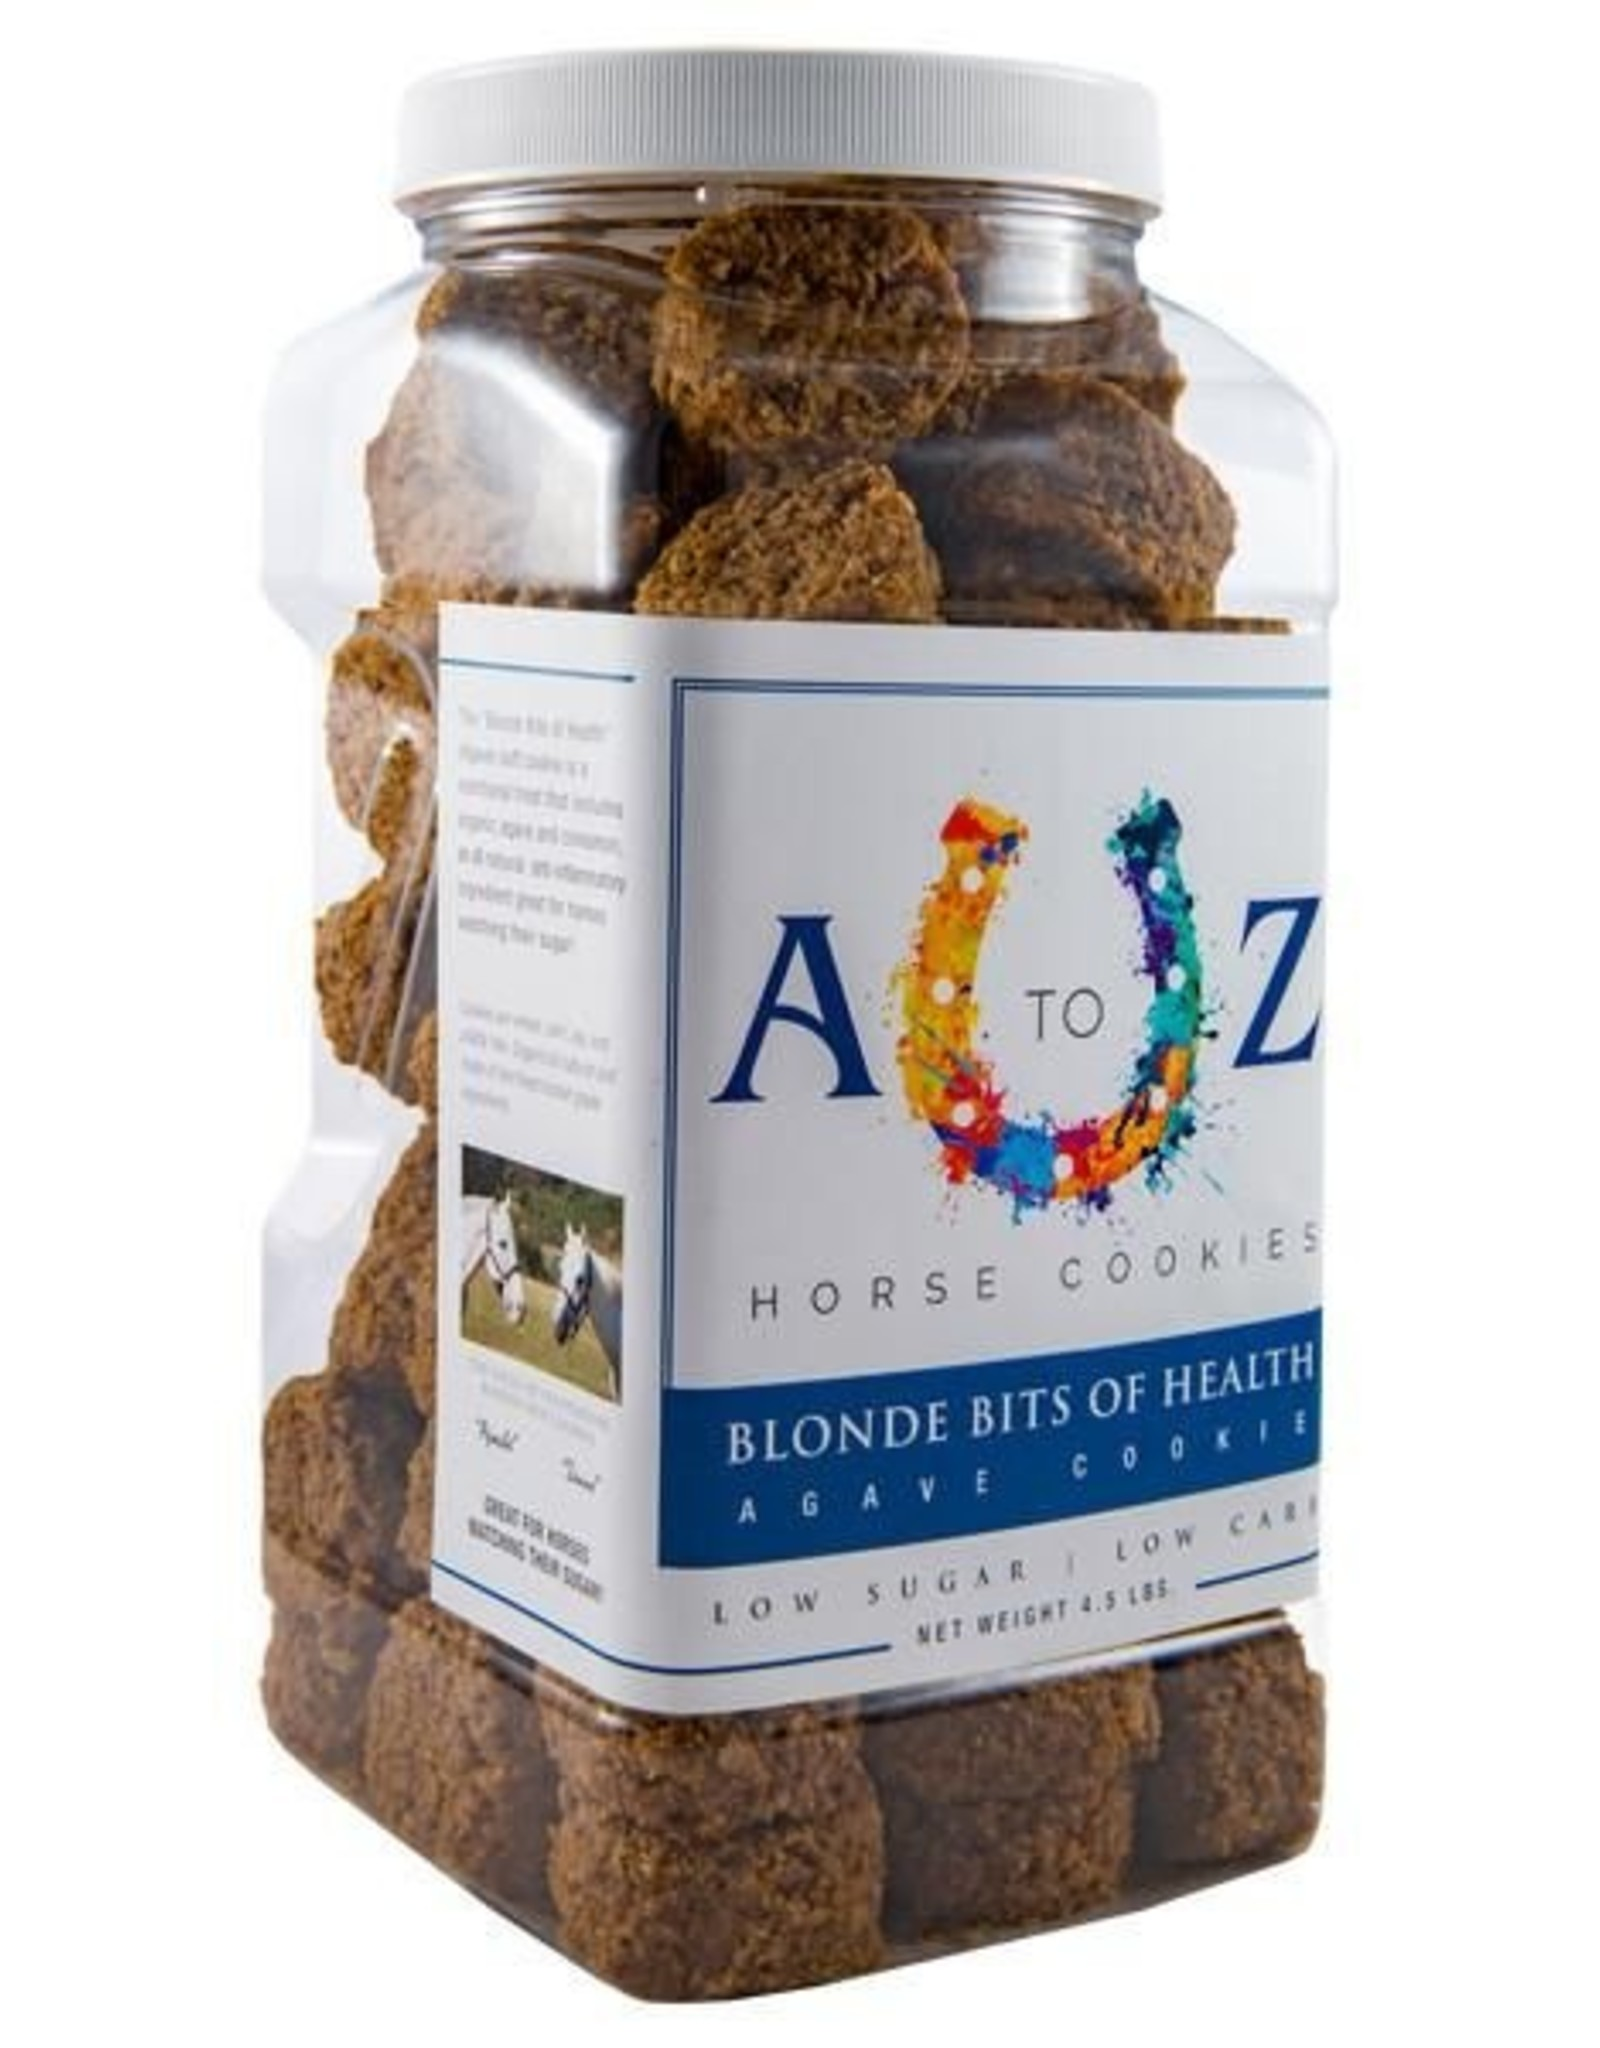 A TO Z A TO Z Horse Cookies - Blonde Bits of Health - 4.5lb Jar